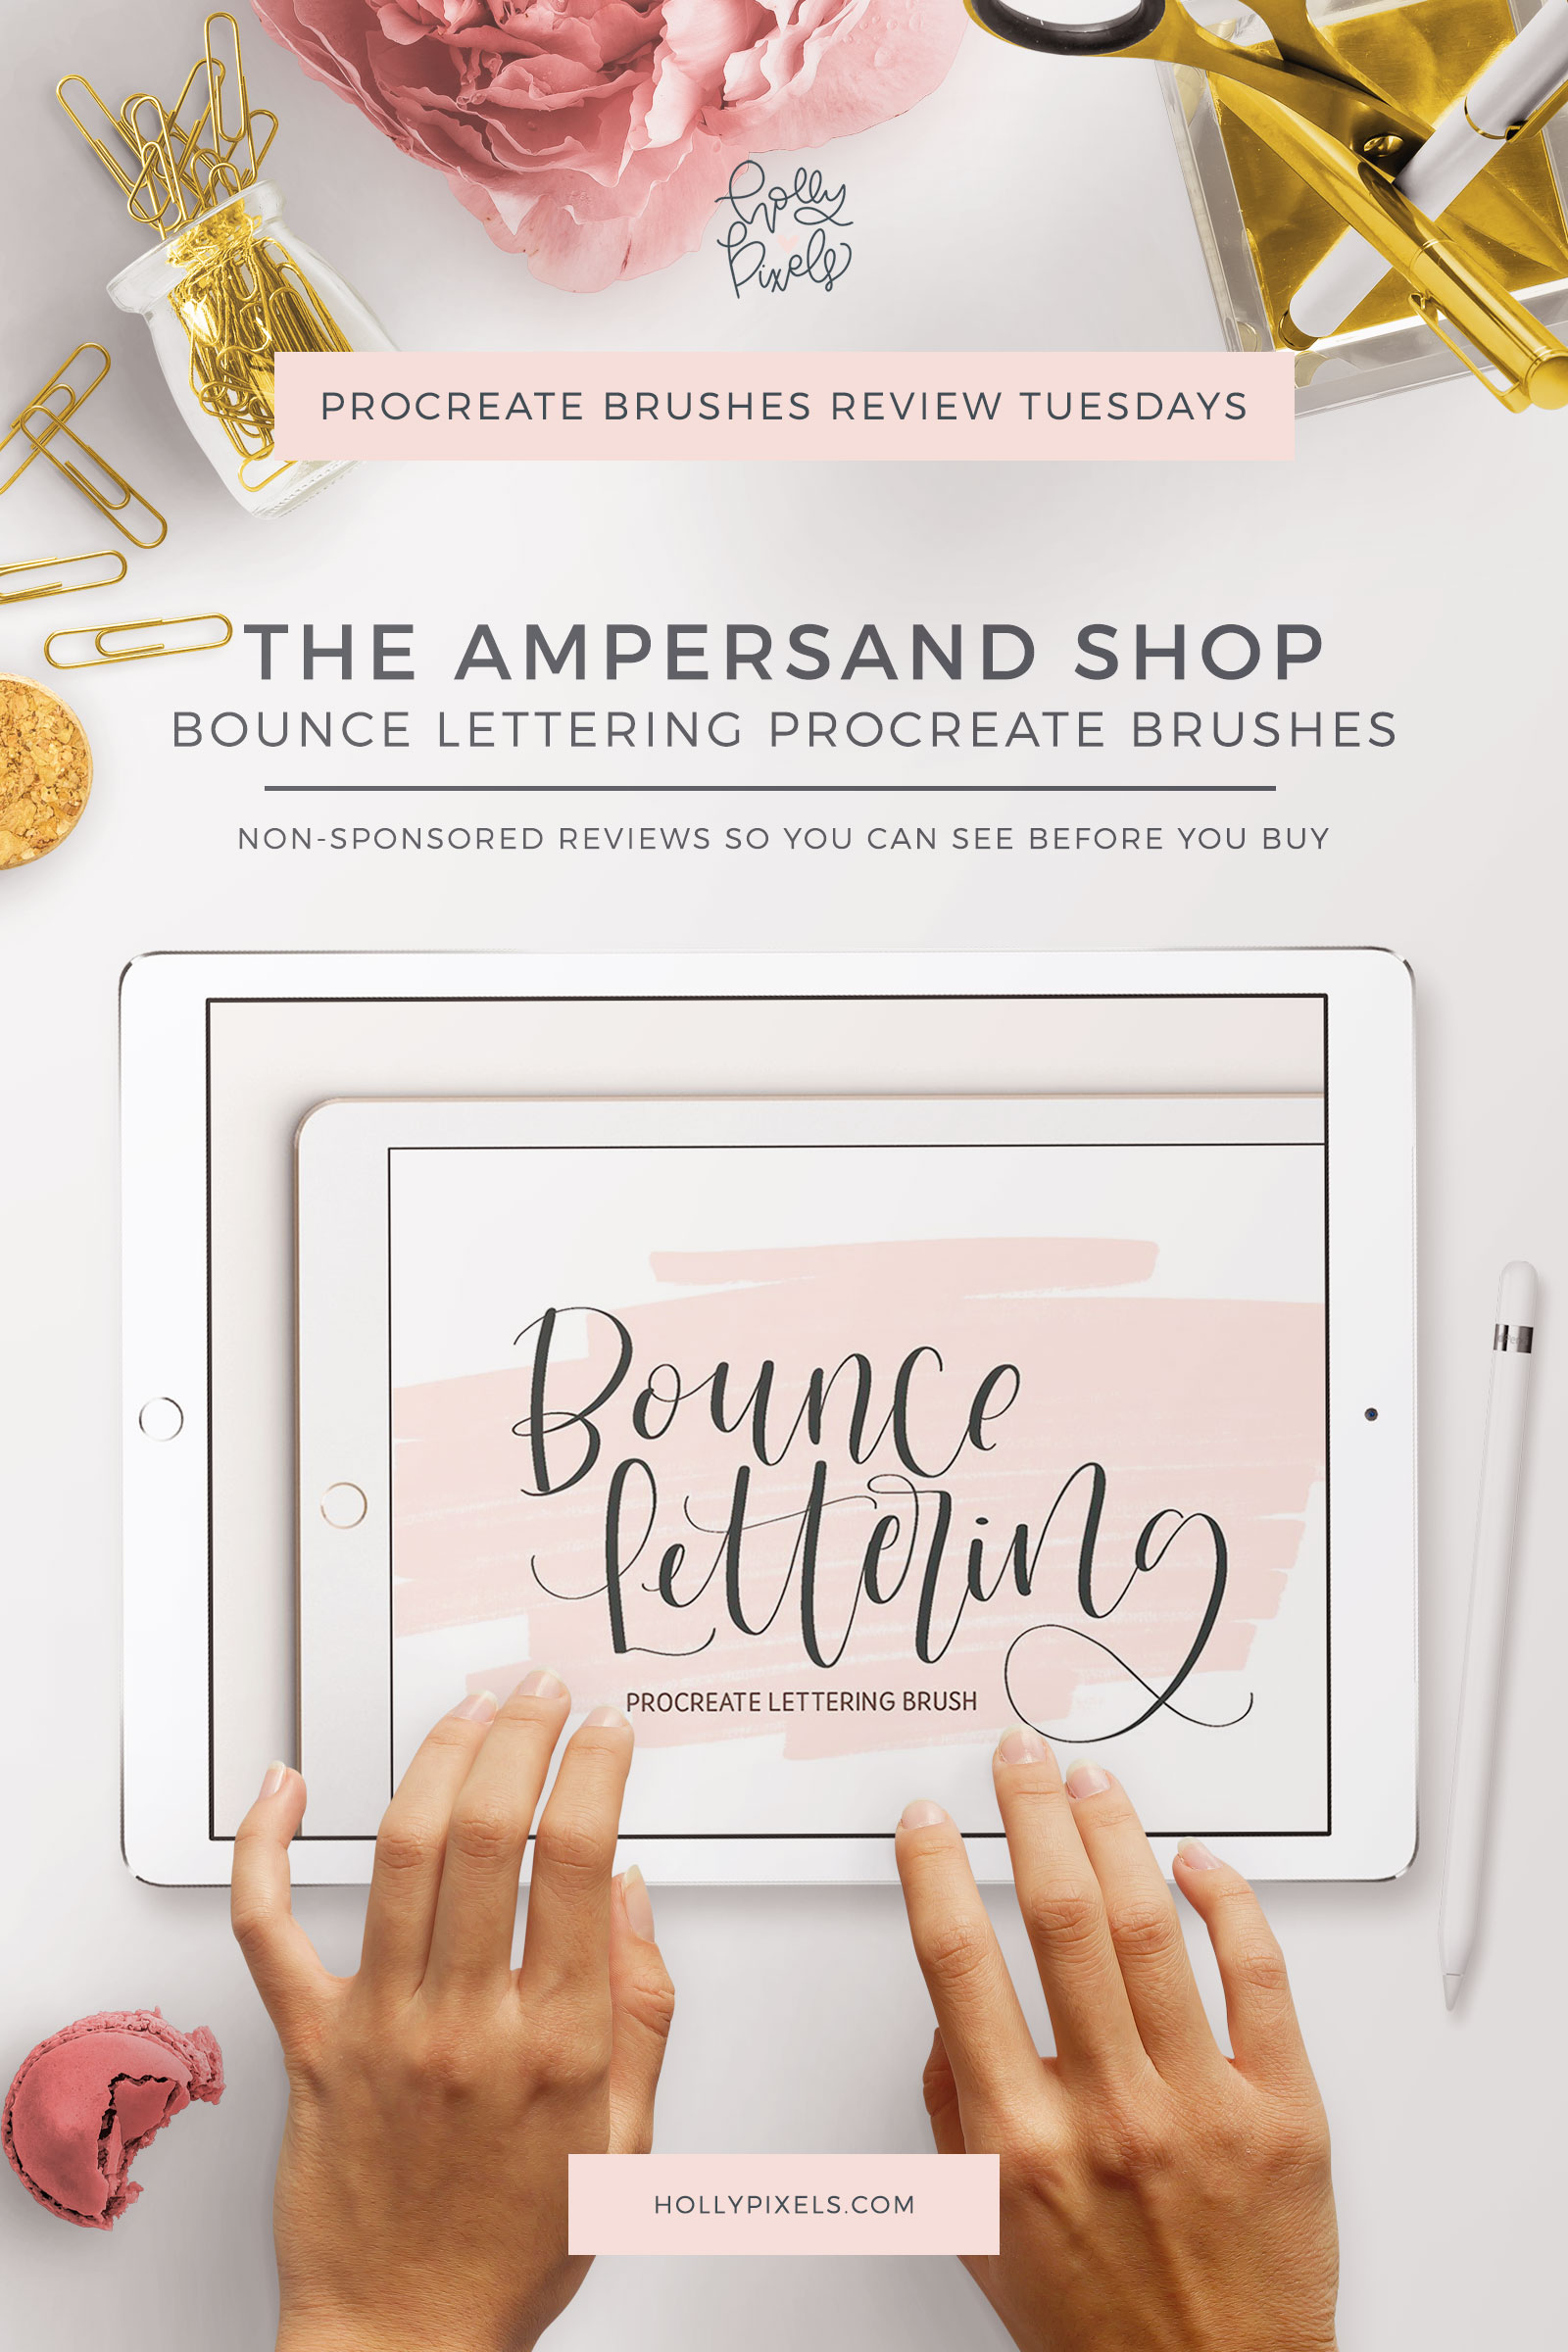 This week's Procreate brushes review features Bounce Lettering by Ampersand Shop that can be purchased at Creative Market.